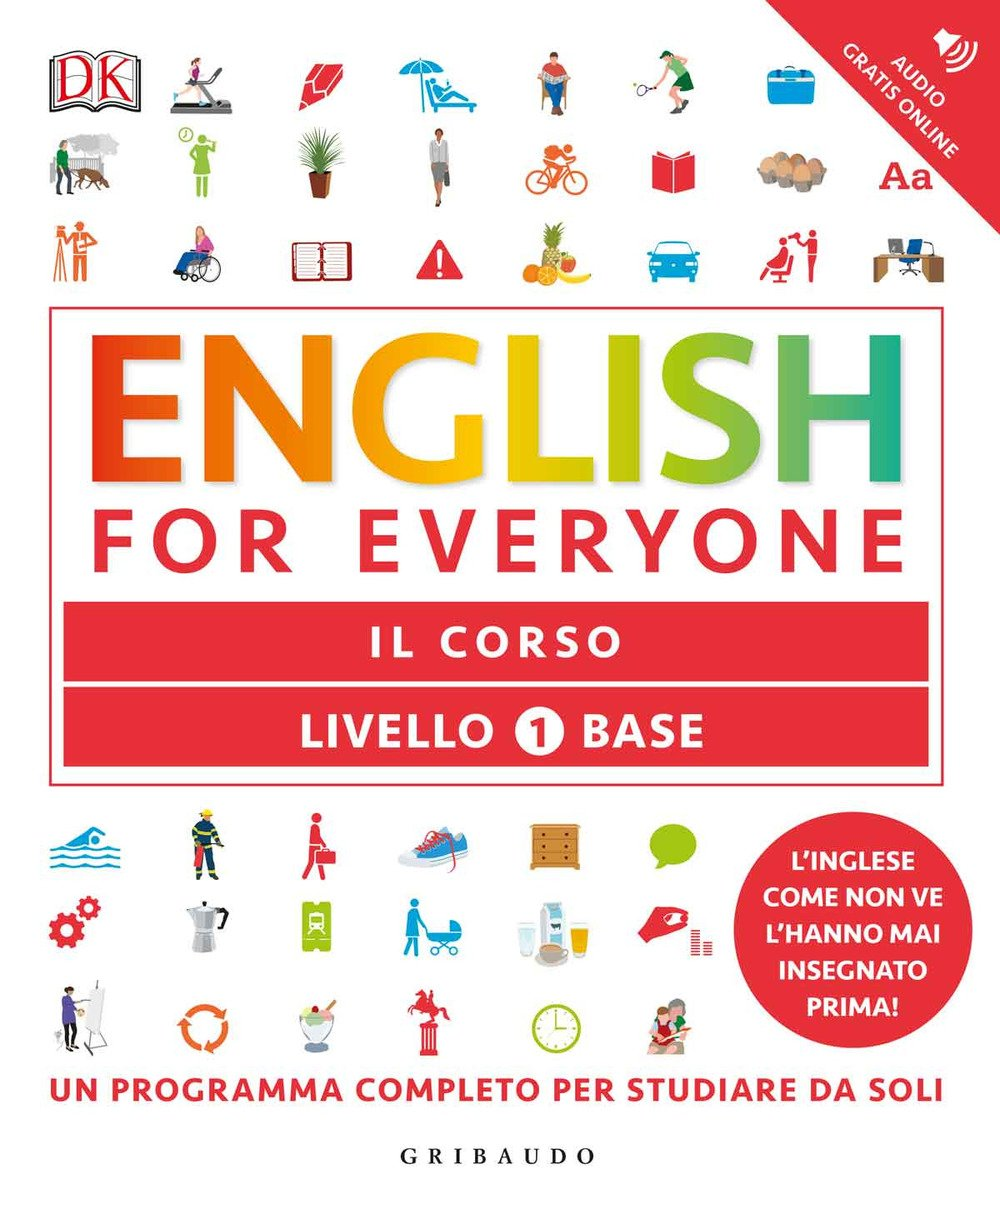 フレッシュ English For Everyone Grammatica Completa Pdf - ストマルゲ